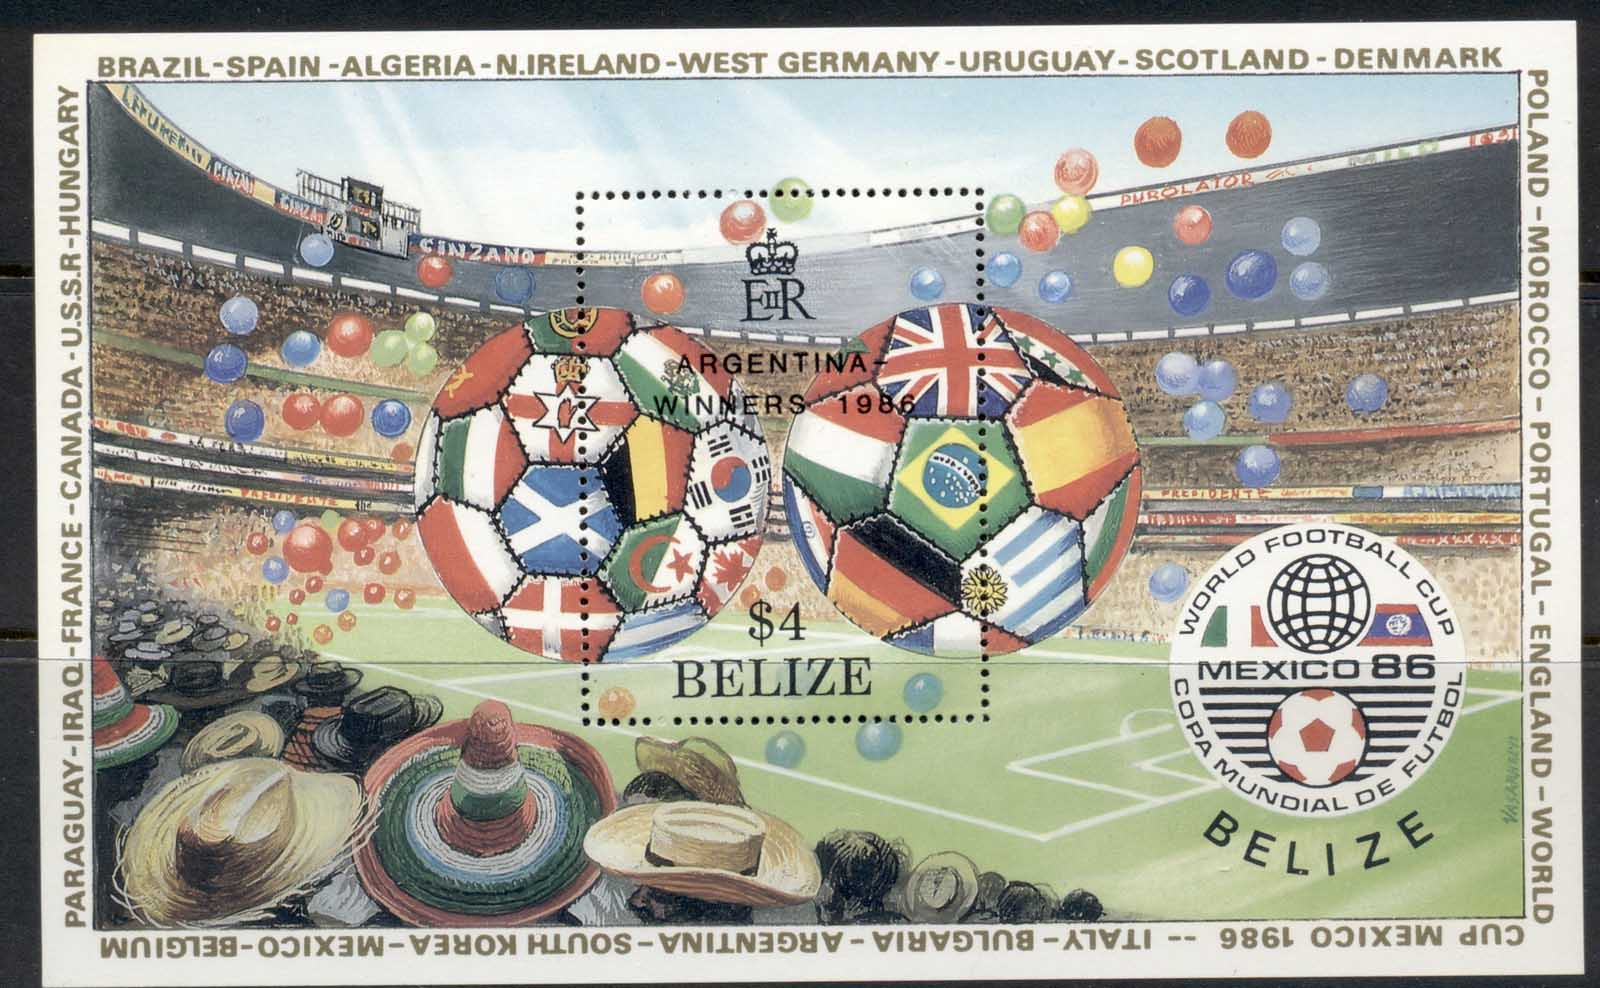 Belize 1986 World Cup Soccer Opt. Argentina Winners MS MUH